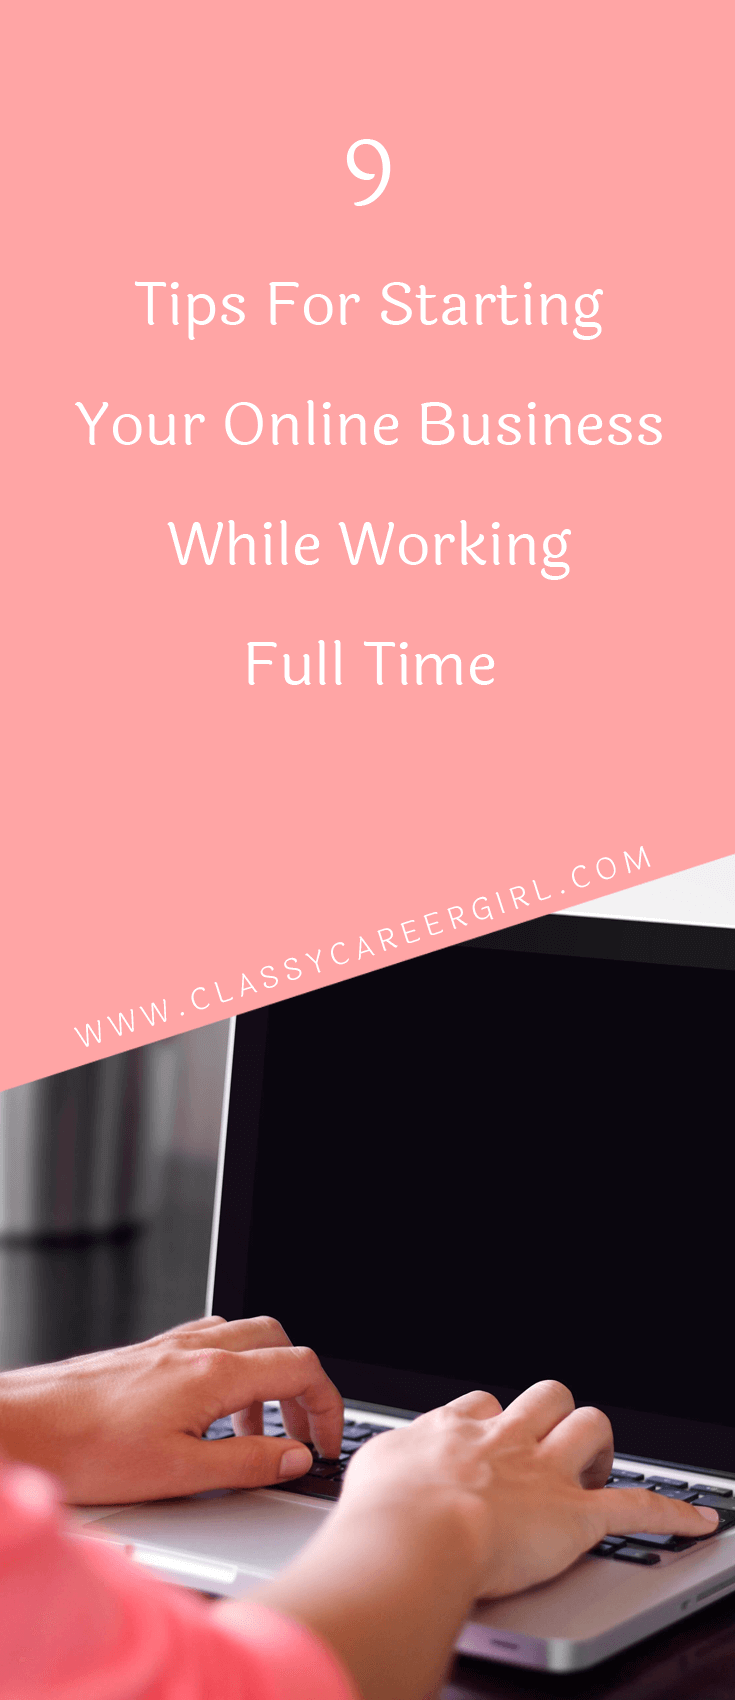 9 Tips For Starting Your Online Business While Working Full Time (1)